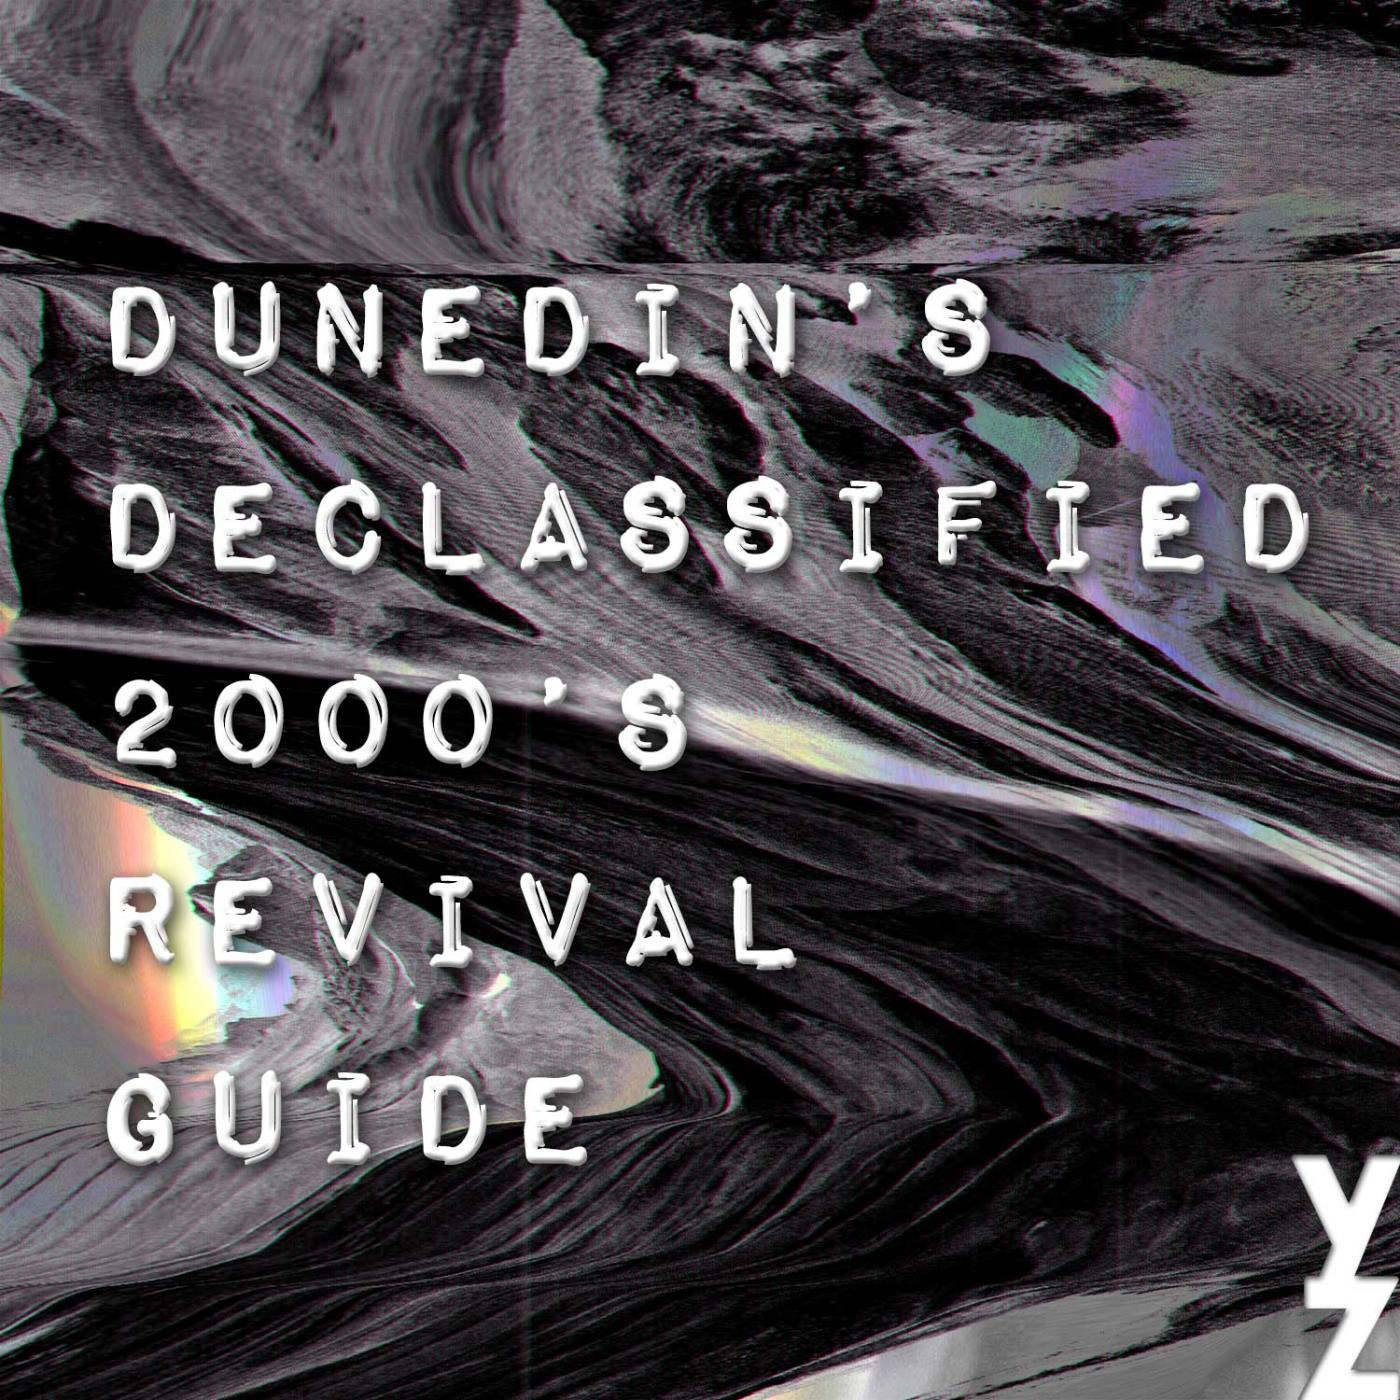 Dunedin's Declassified 2000's Revival Guide on Youth Zone - 23-10-2020 - Apps and Chats